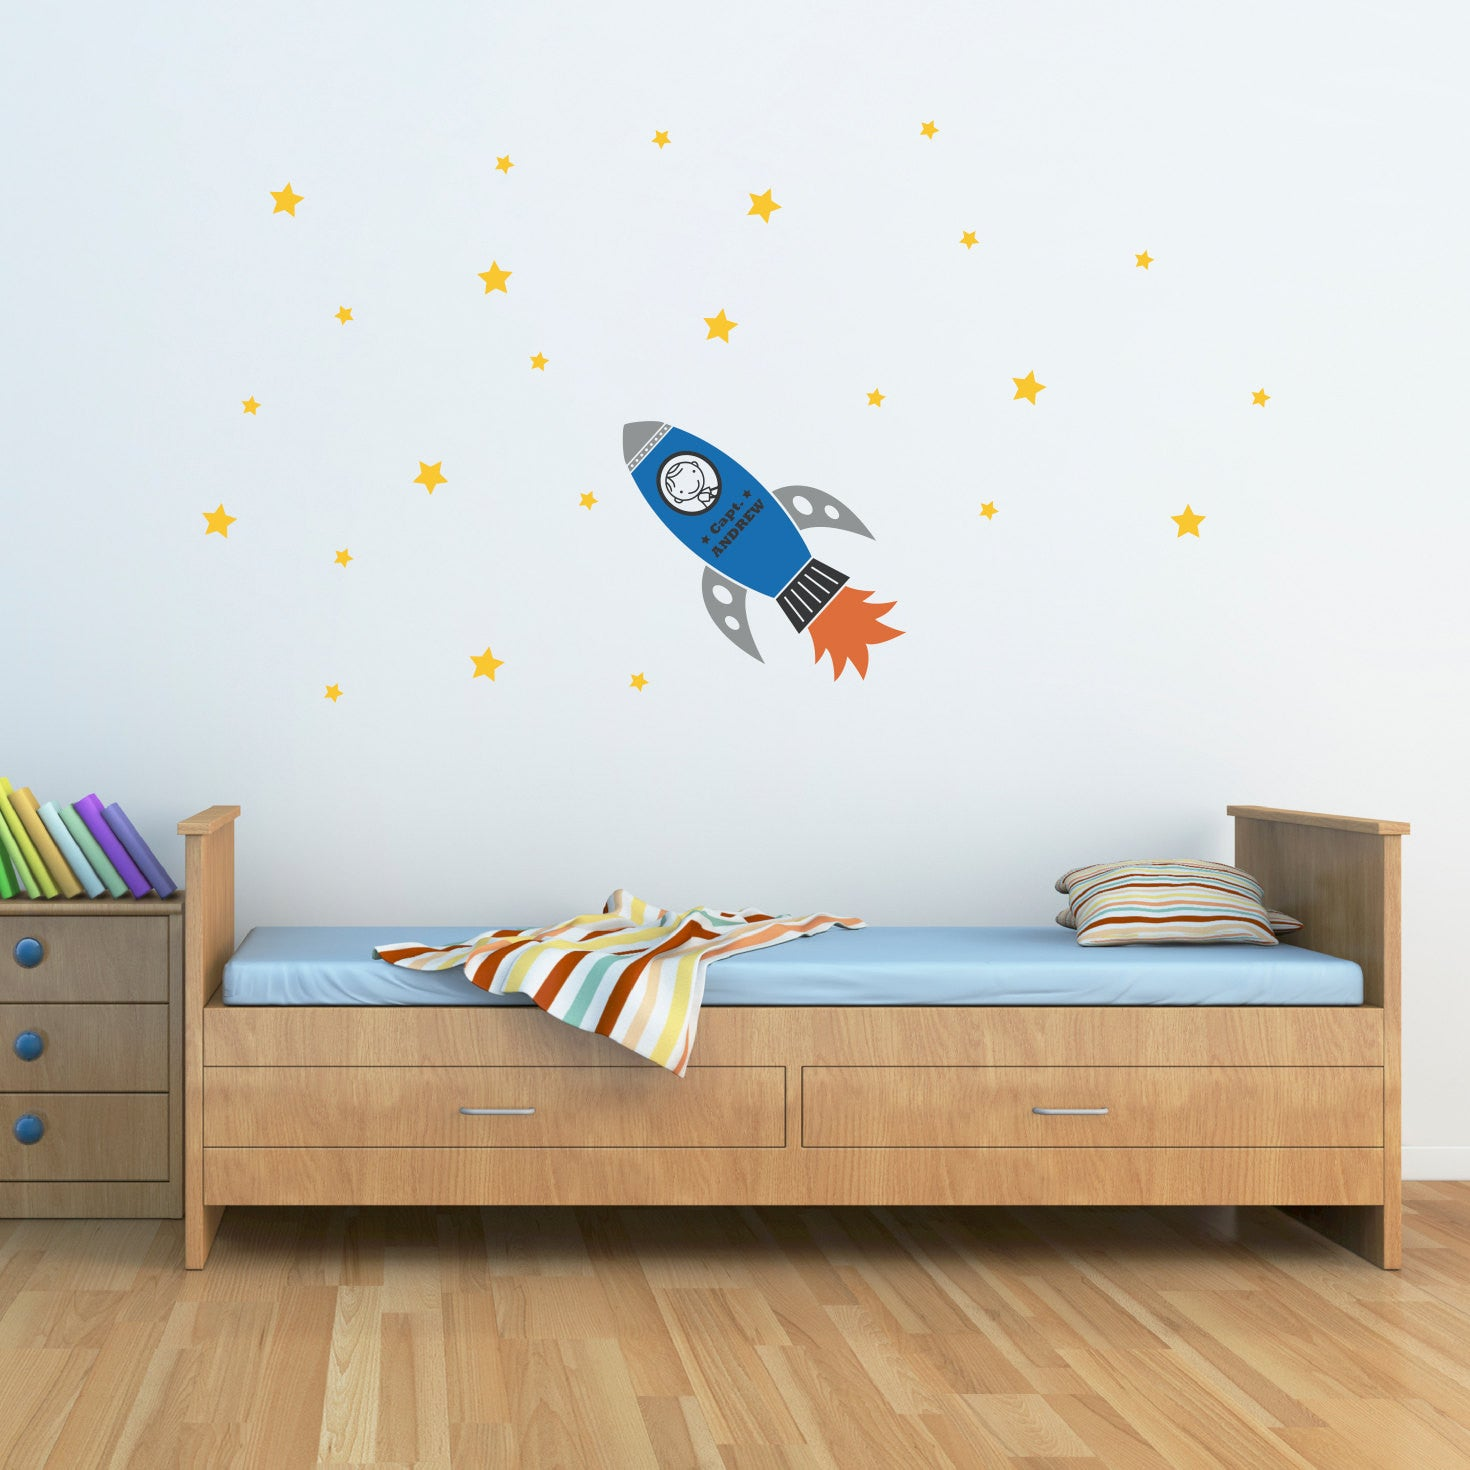 Rocket Wall Decal With Boys Name And Stars Personalized Vinyl - Personalized vinyl wall art decals